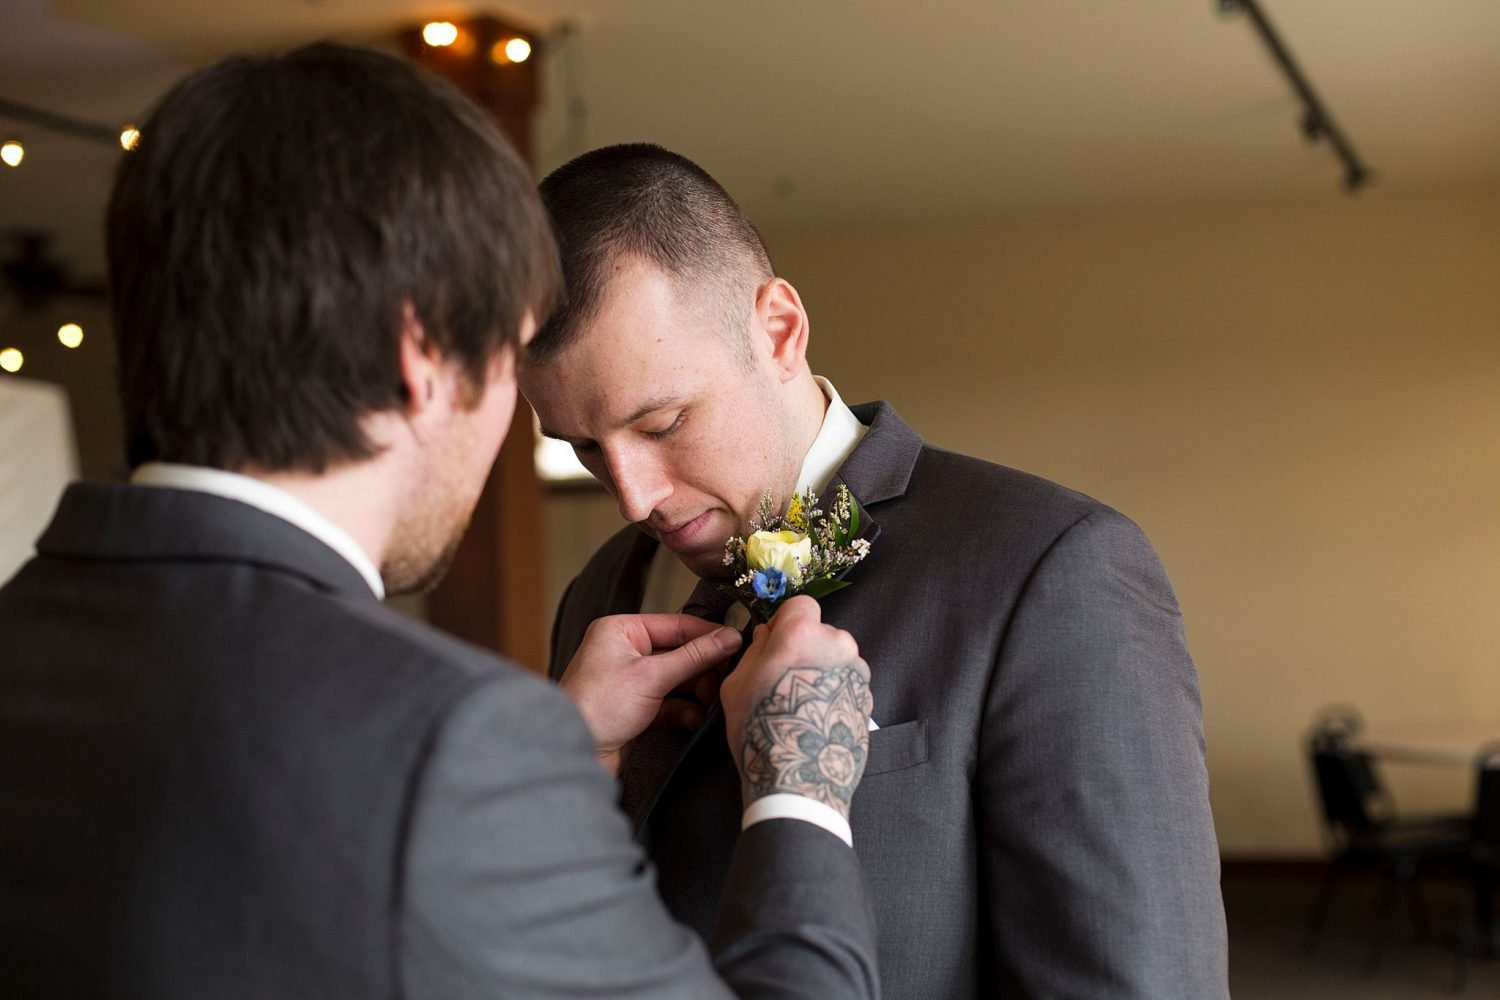 The best man helps the groom with his boutonniere.